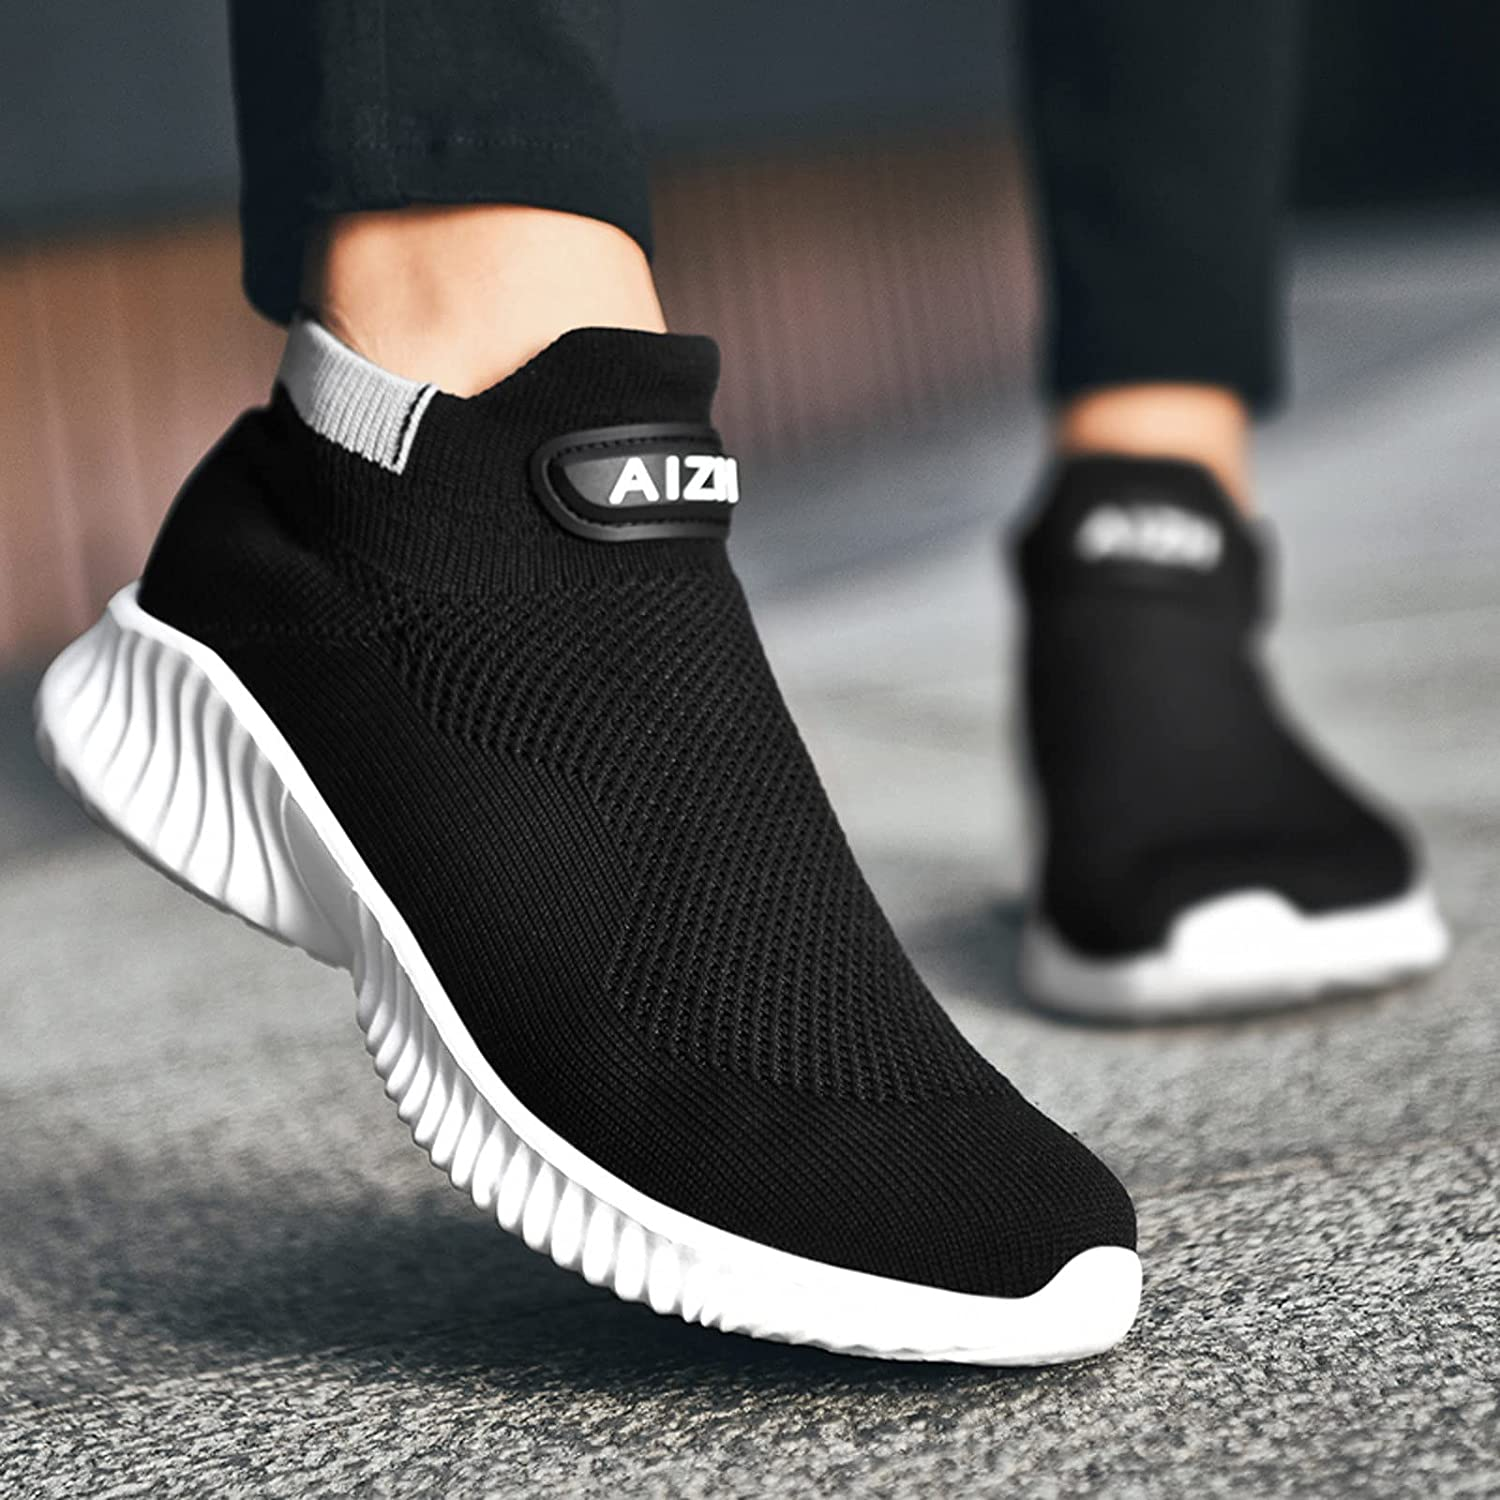 EKOUSN Unisex New life Fashion Outdoor Max 49% OFF Mesh Br Shoes Sports Runing Casual